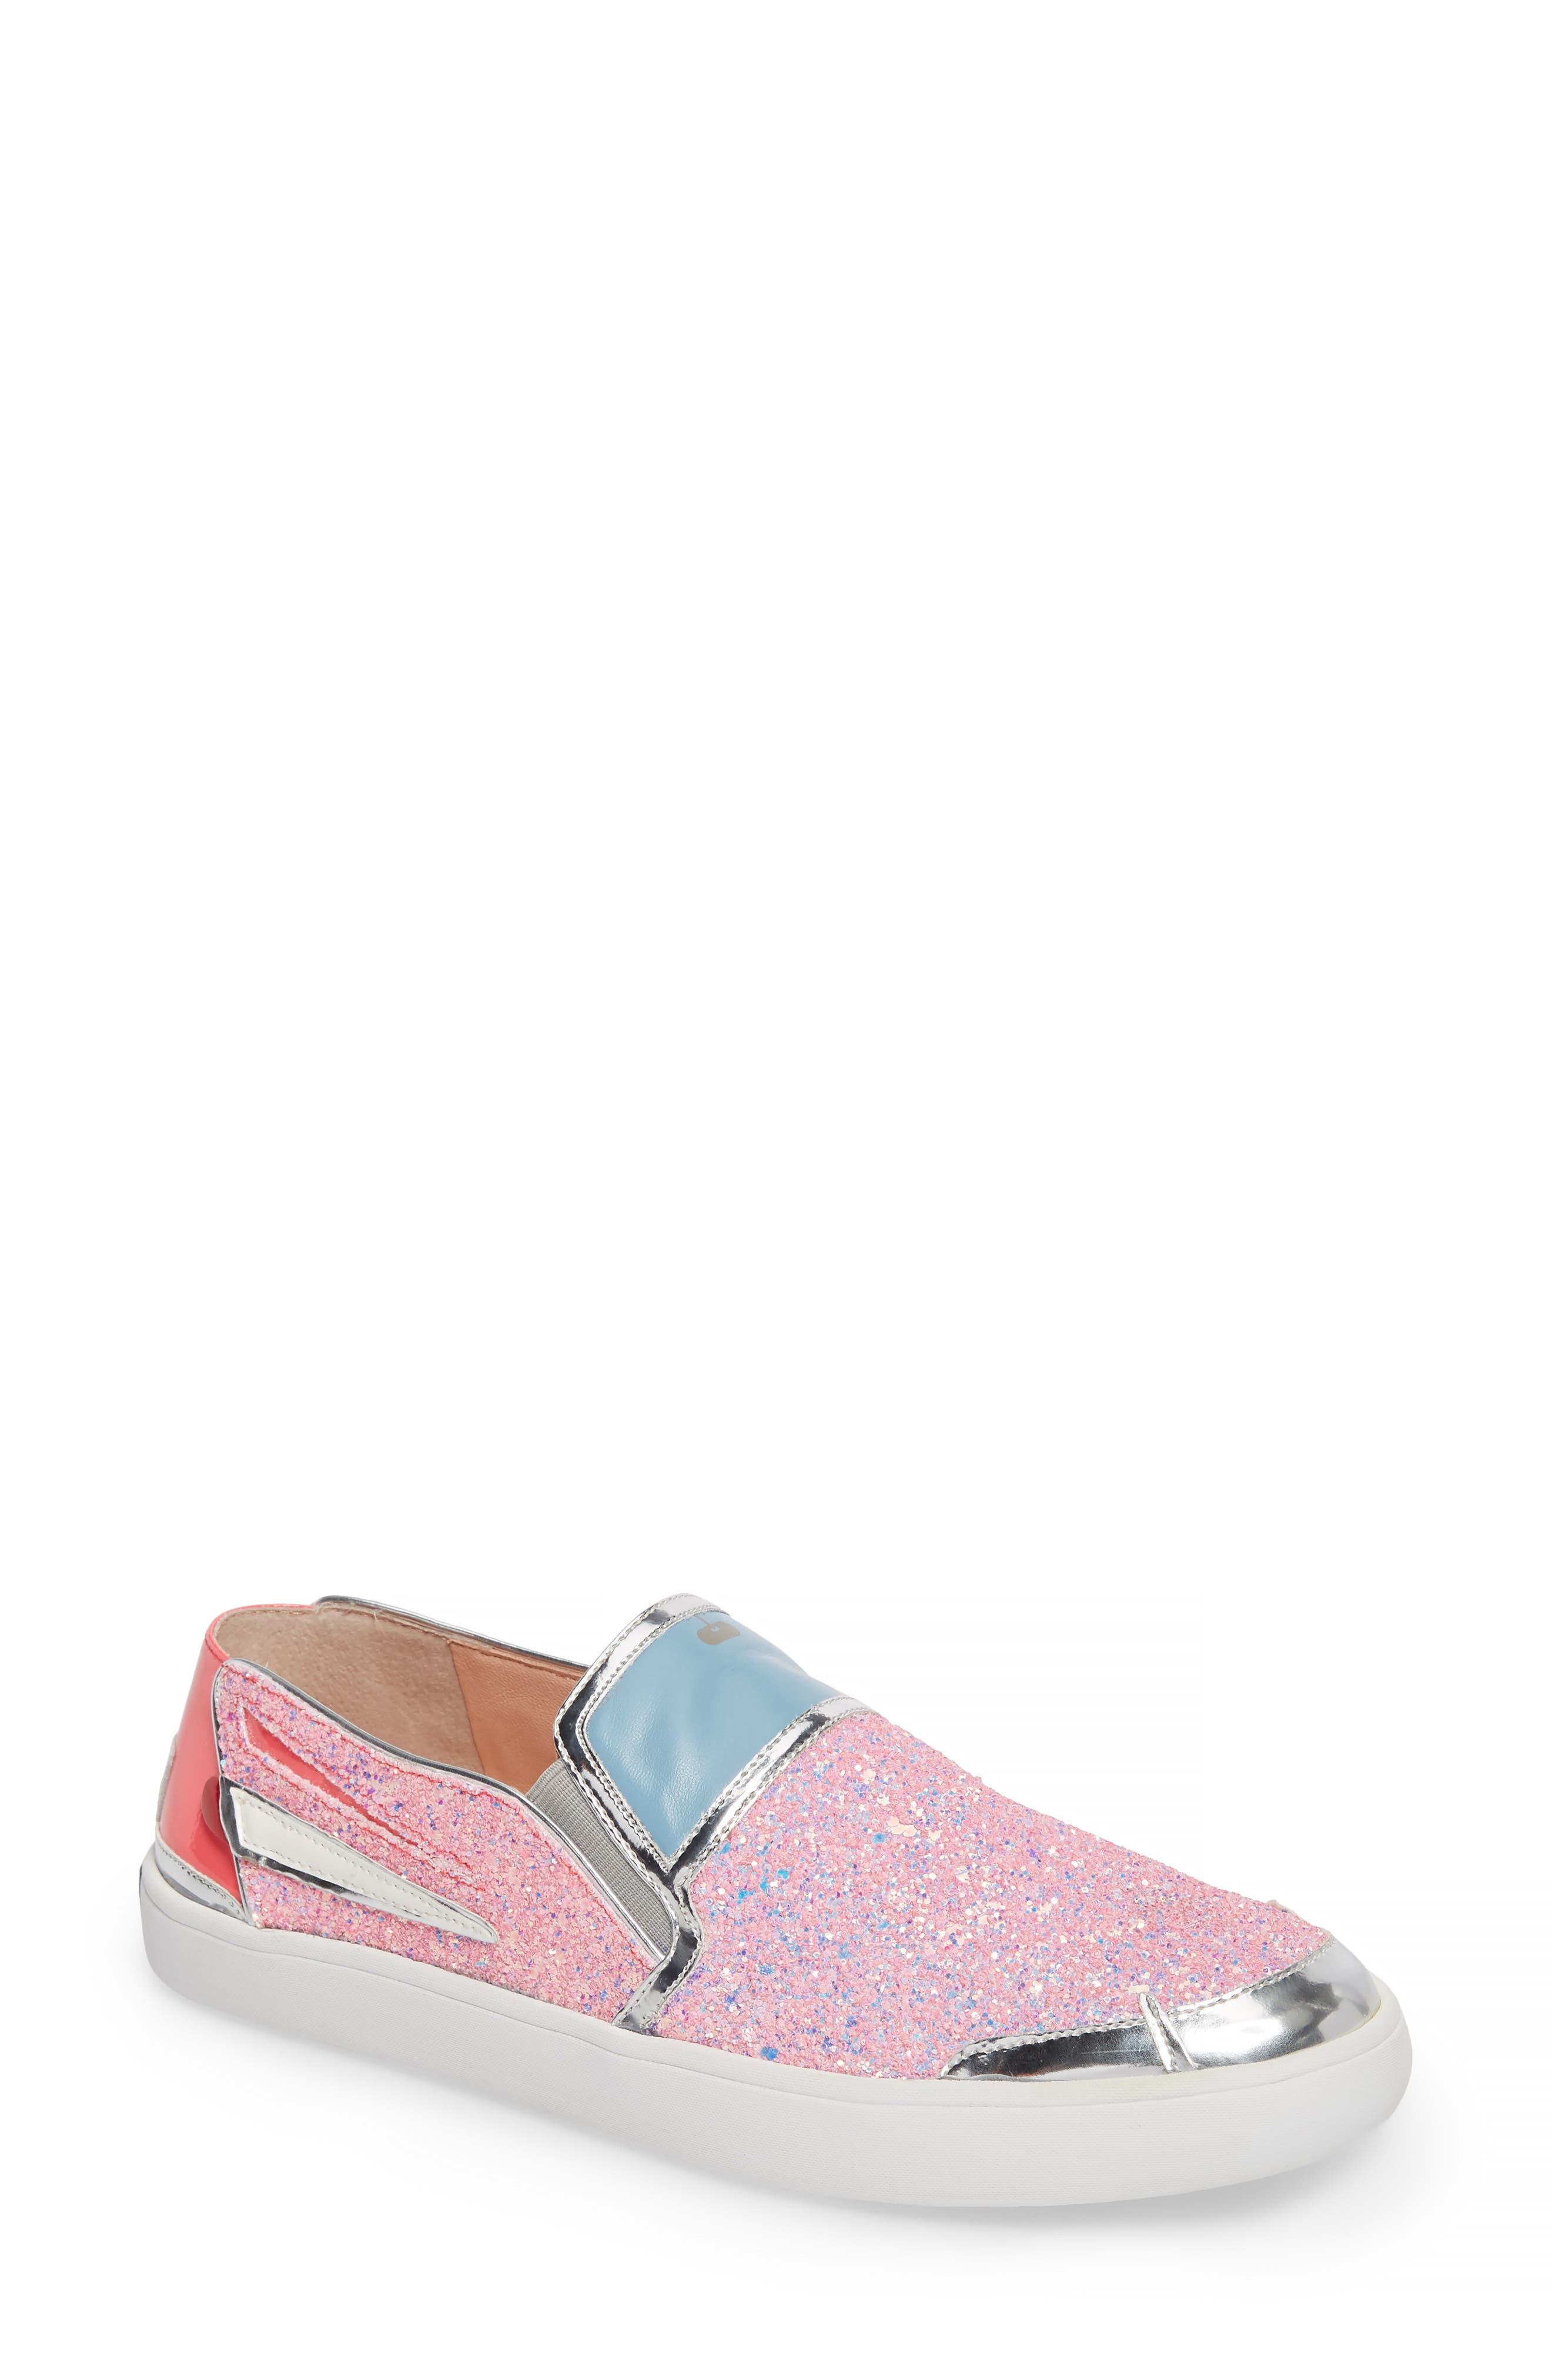 Lotus Slip-On Sneaker,                         Main,                         color, Pink